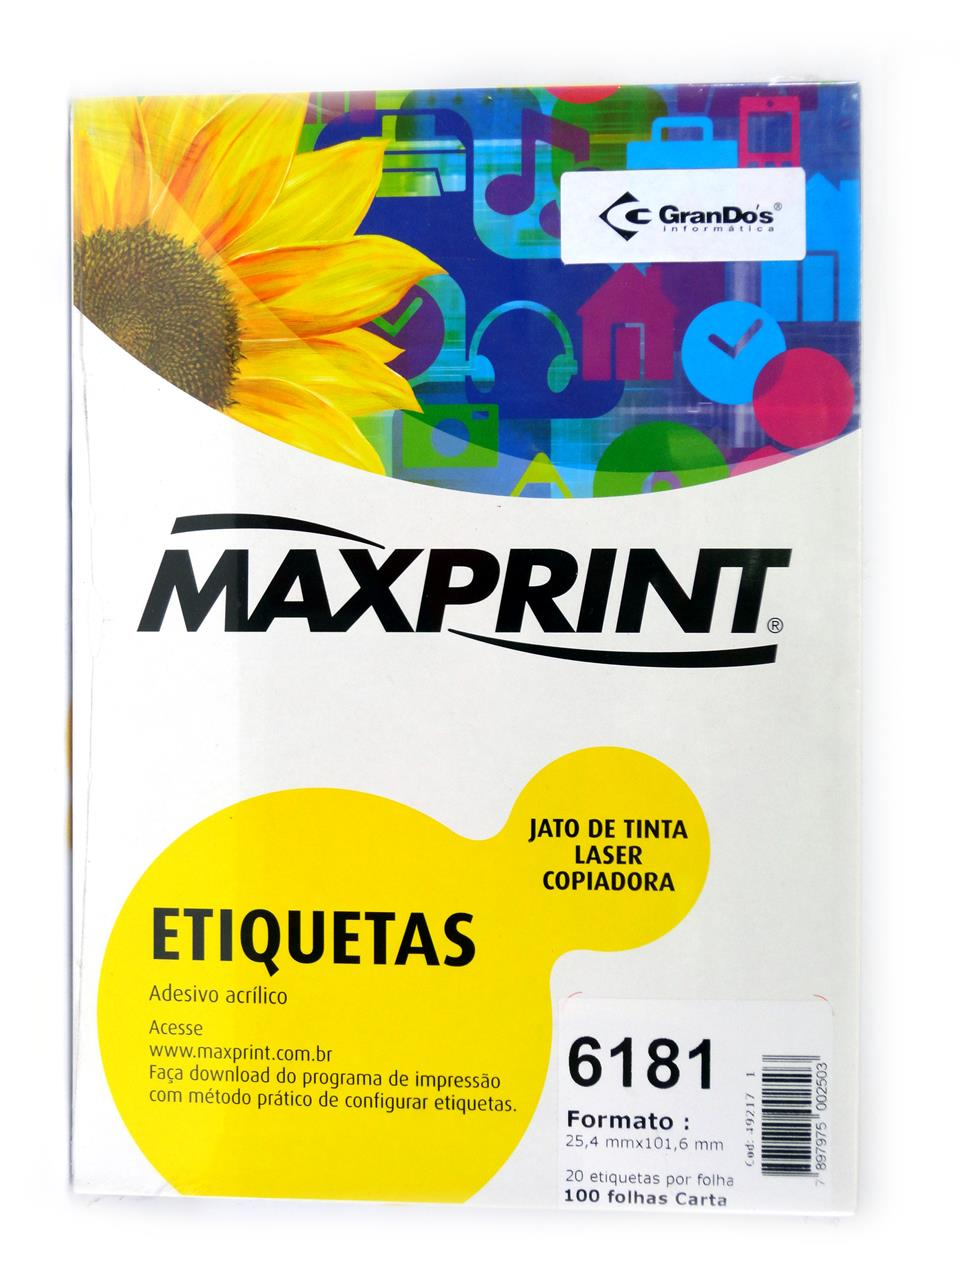 Etiquetas 6181 25,4mm x 101,6mm Maxprint